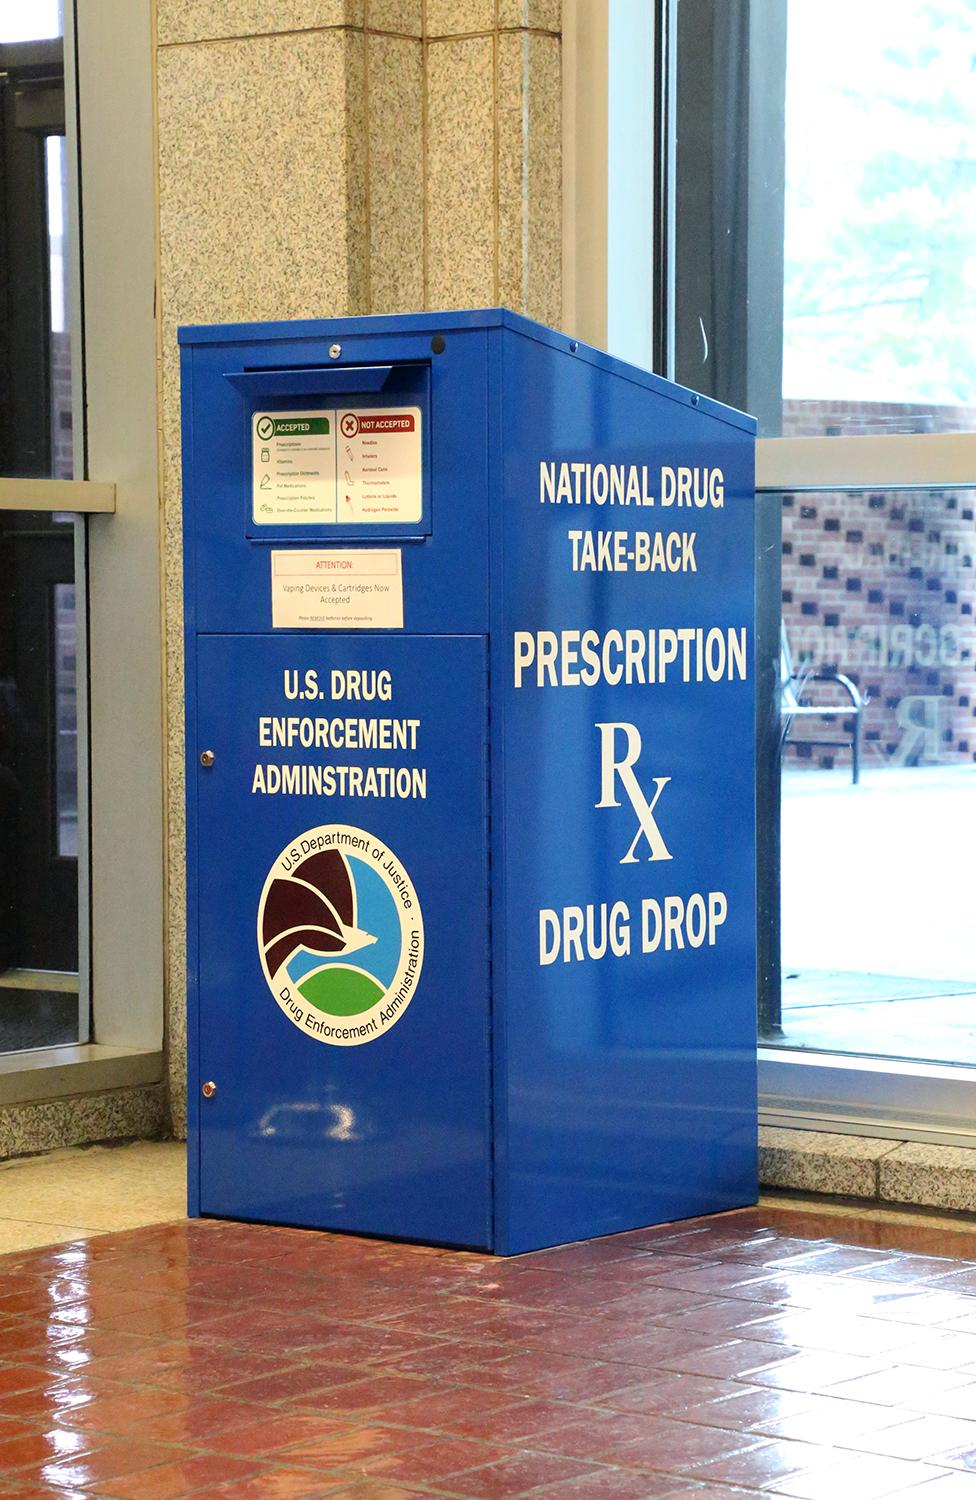 DEA's new drug collection box in the lobby of the Mazzoli Federal Building in Louisville, Kentucky.